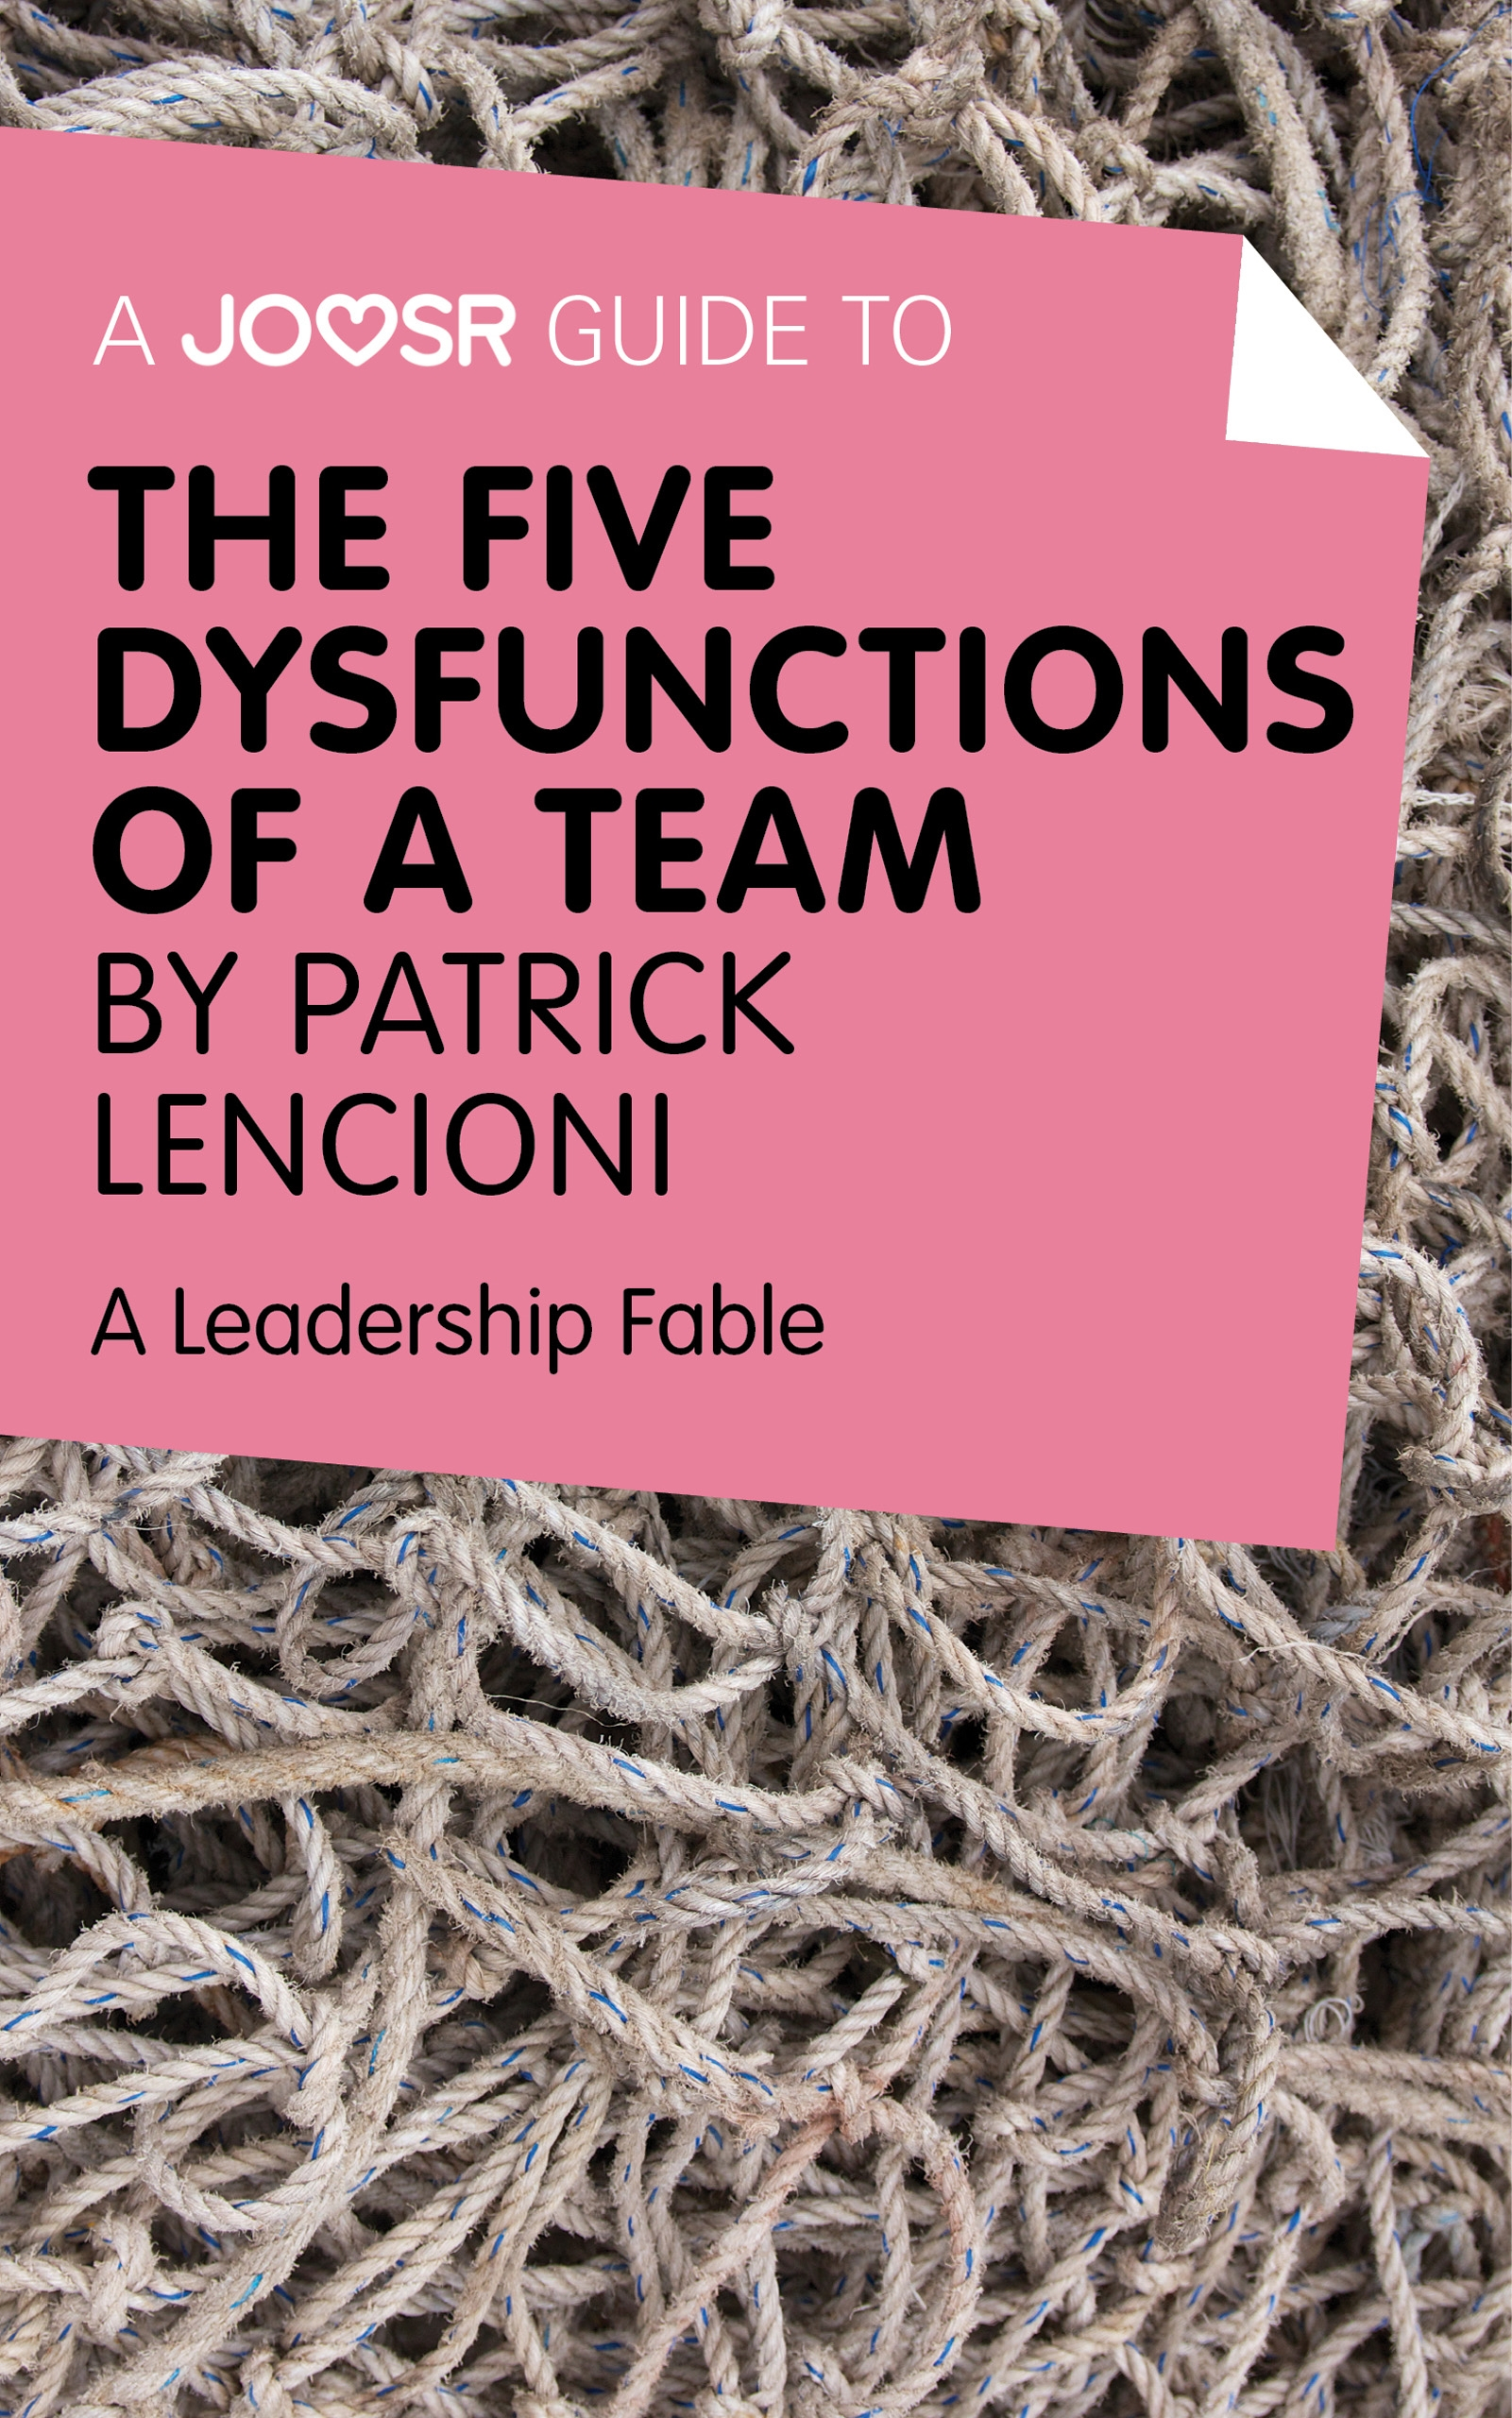 Download Ebook A Joosr Guide to... The Five Dysfunctions of a Team by Patrick Lencioni by Joosr Pdf